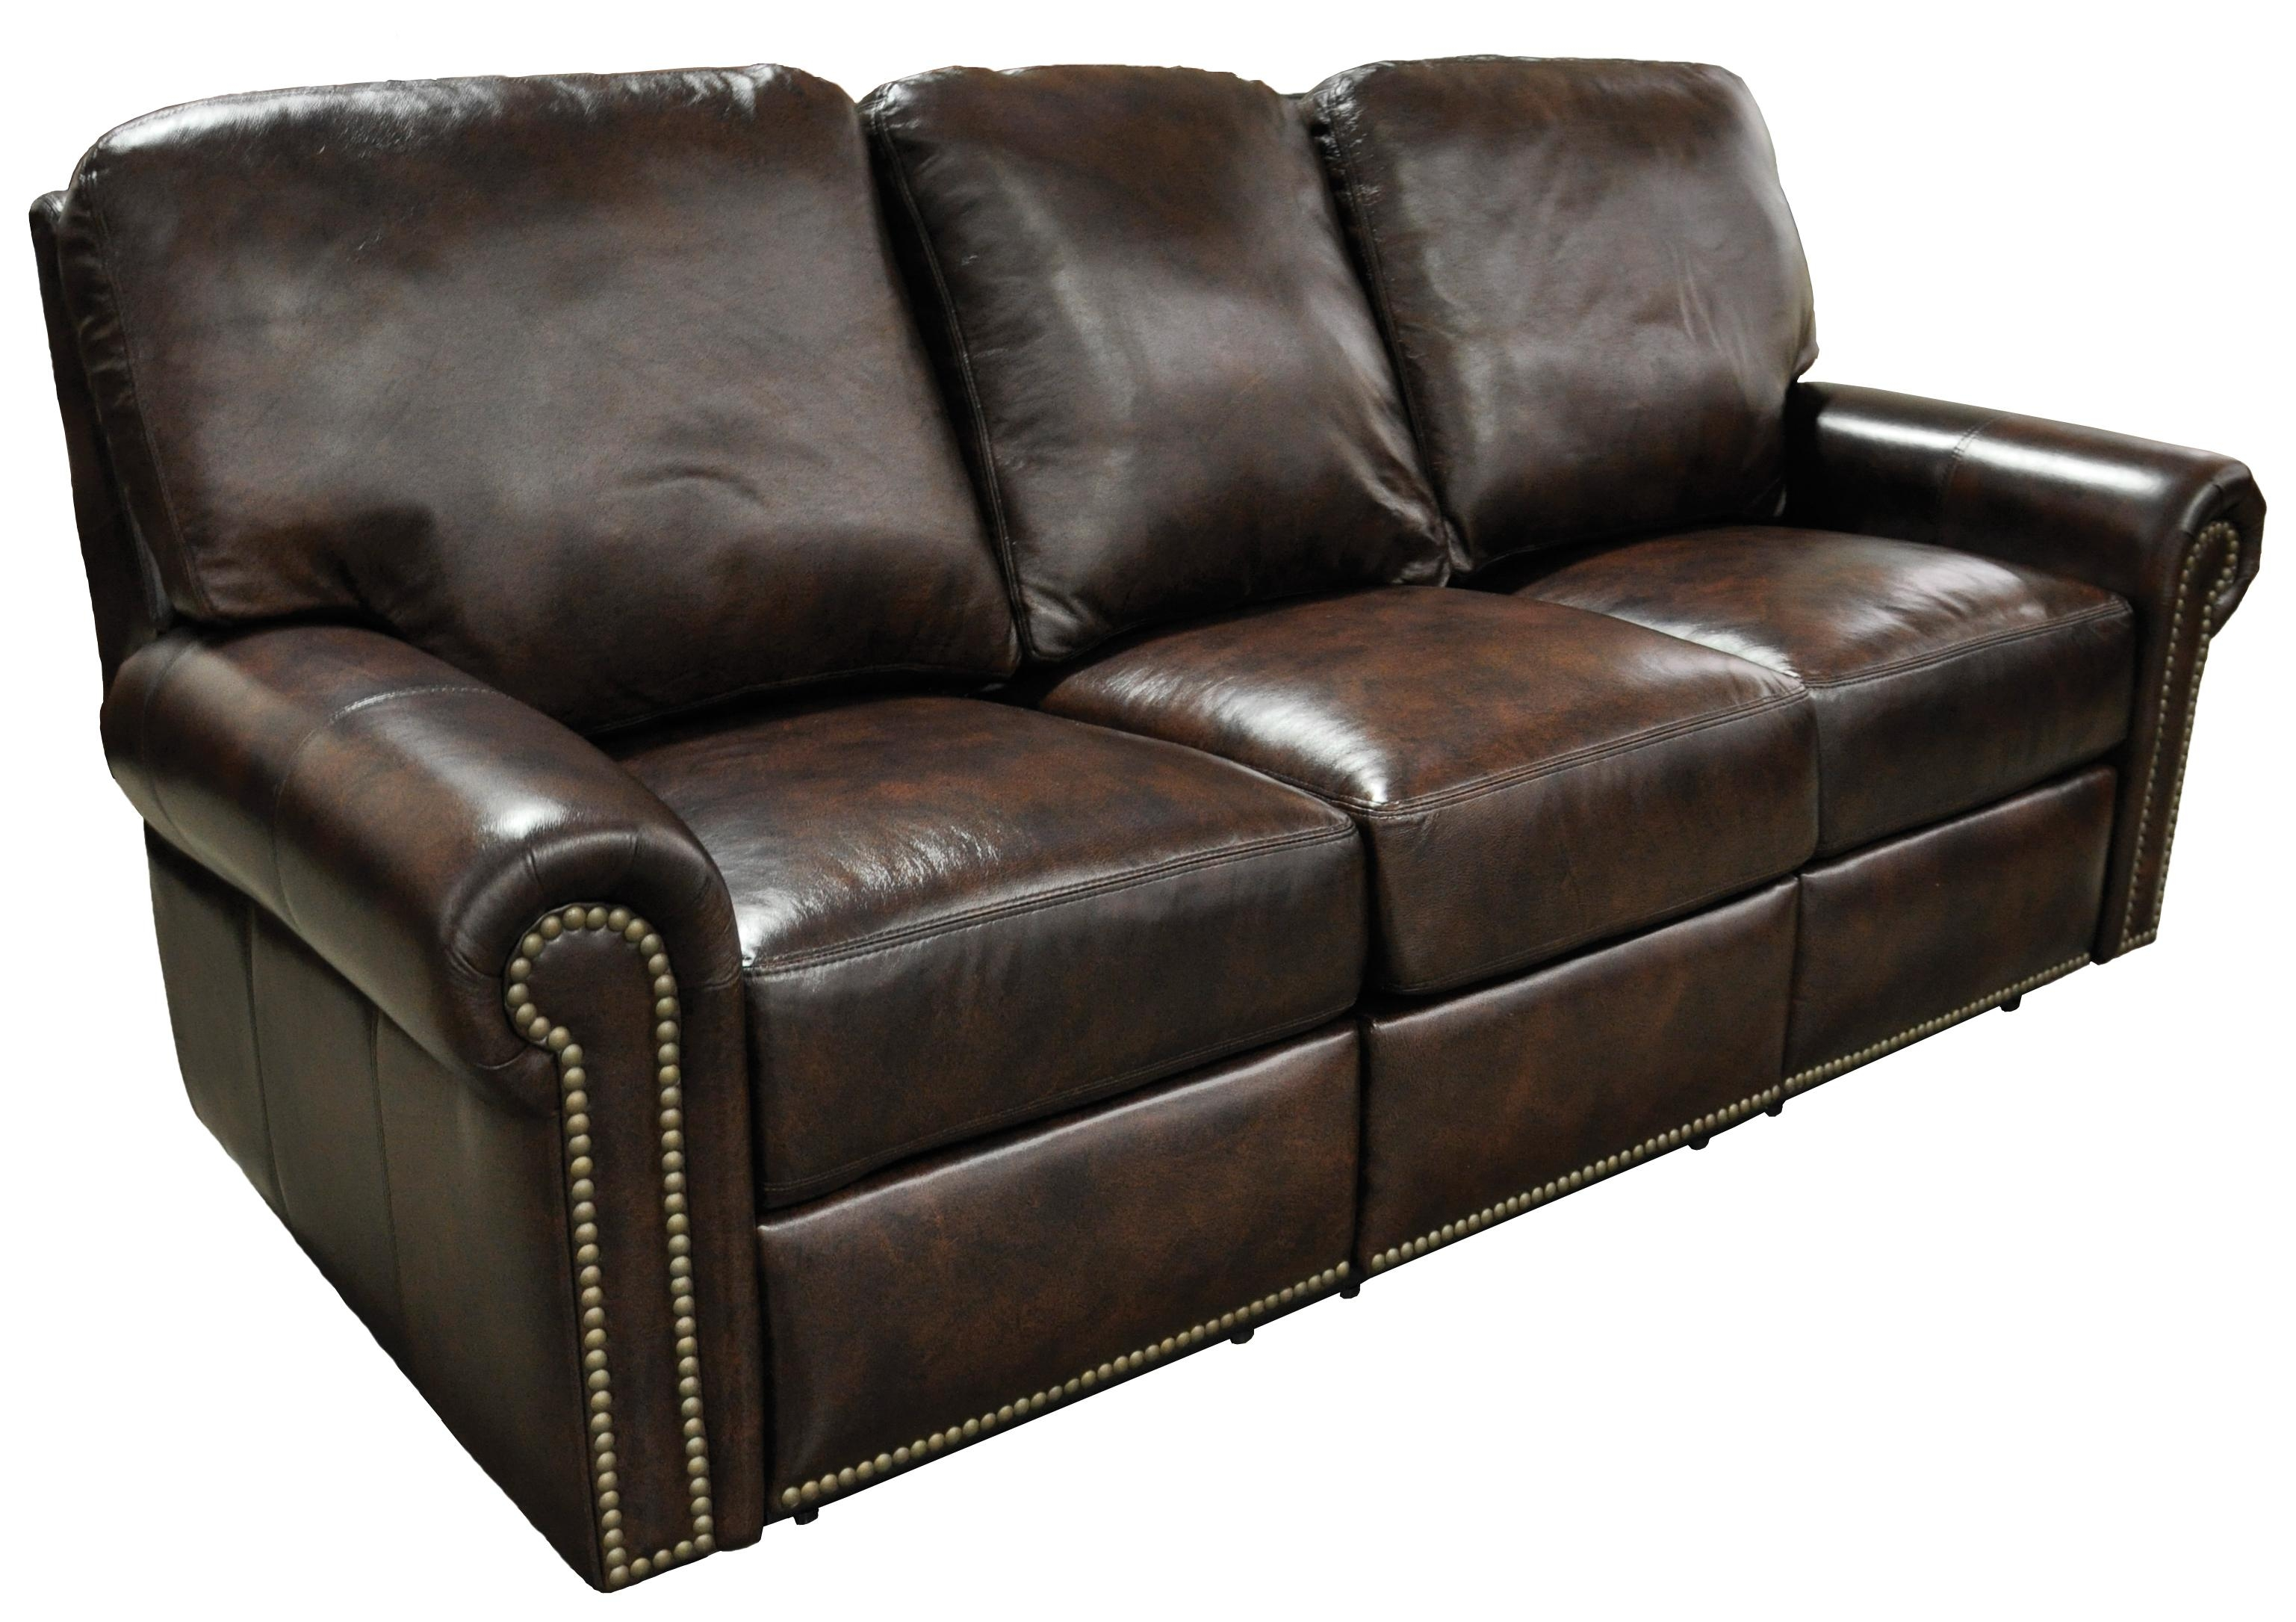 Sofas Center : Berkline Leather Reclinerofa Reviewset Costcoabine With Regard To Berkline Sofas (Image 8 of 20)